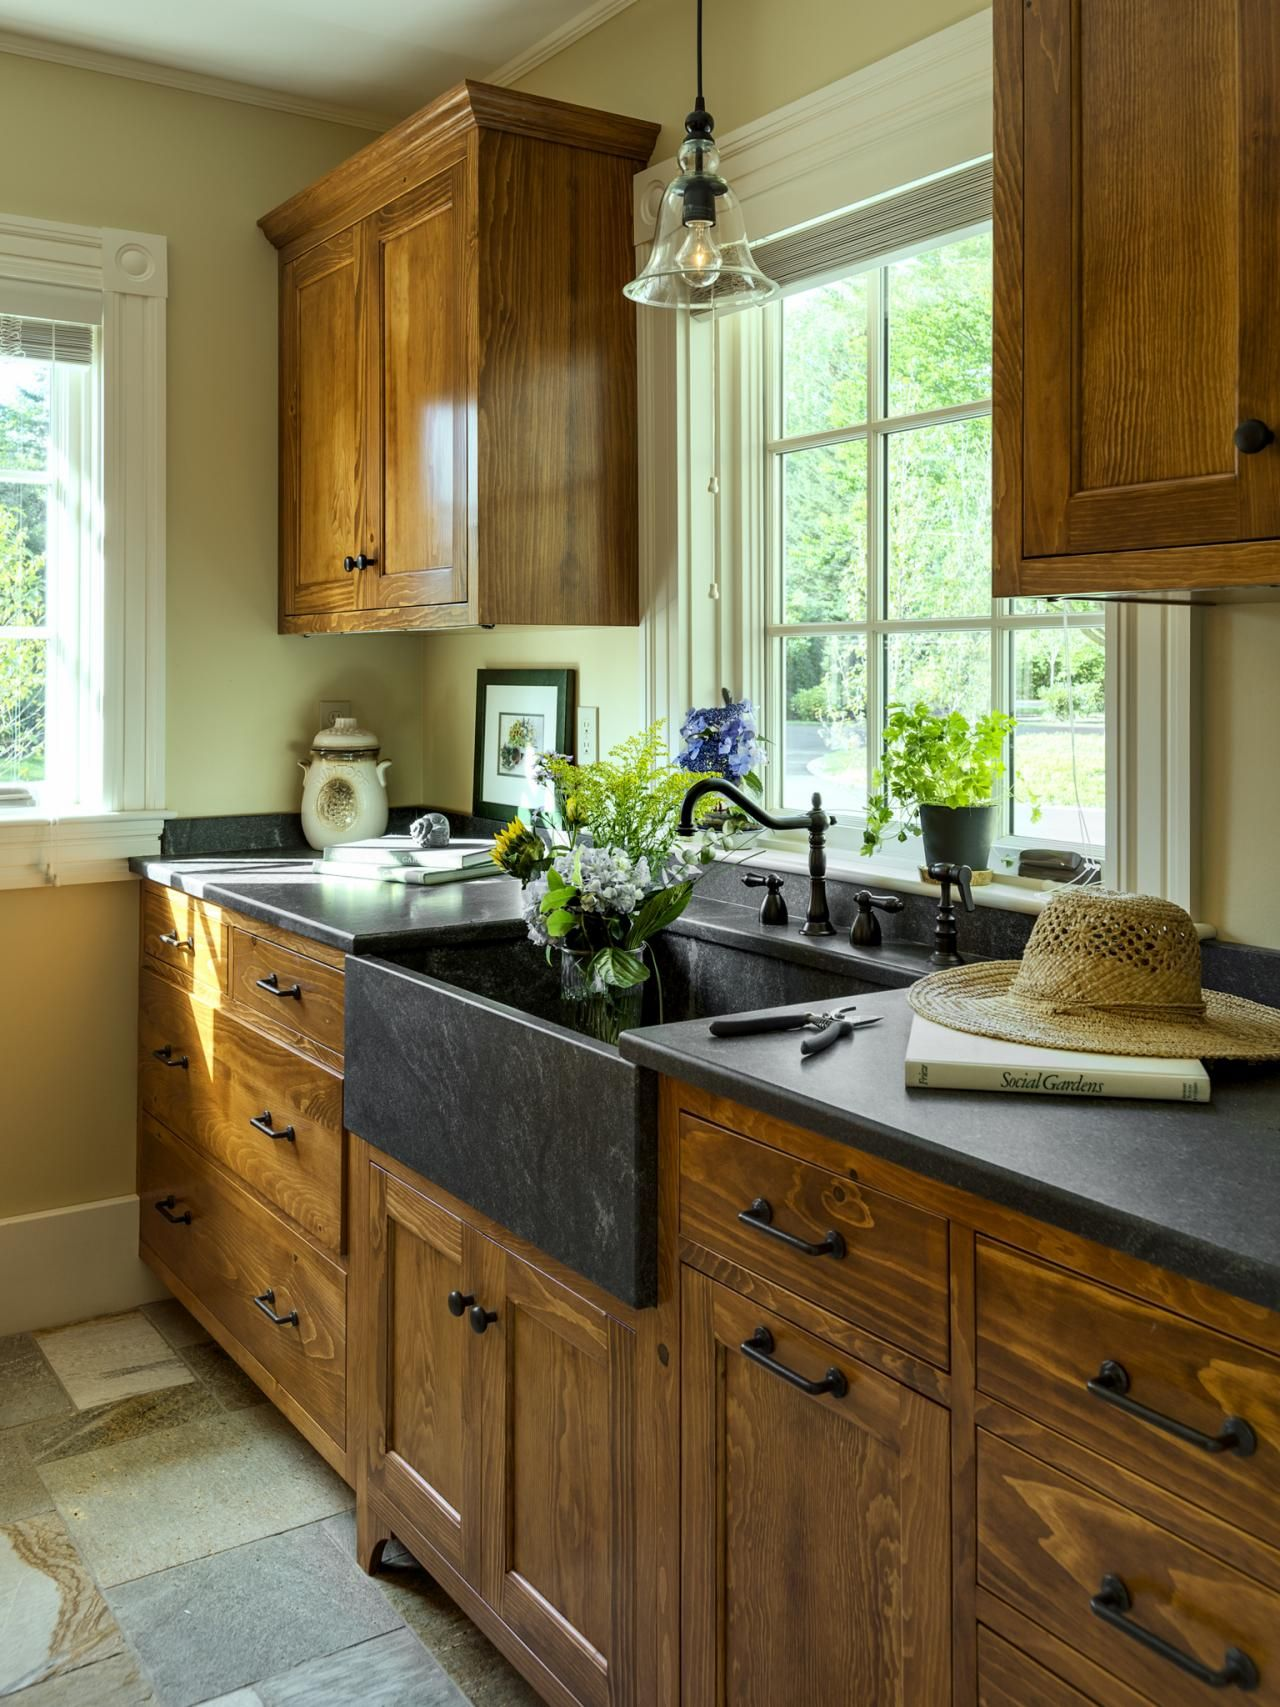 Top 50 pinterest gallery 2014 hgtv sinks and kitchens for Dark wood cabinets small kitchen